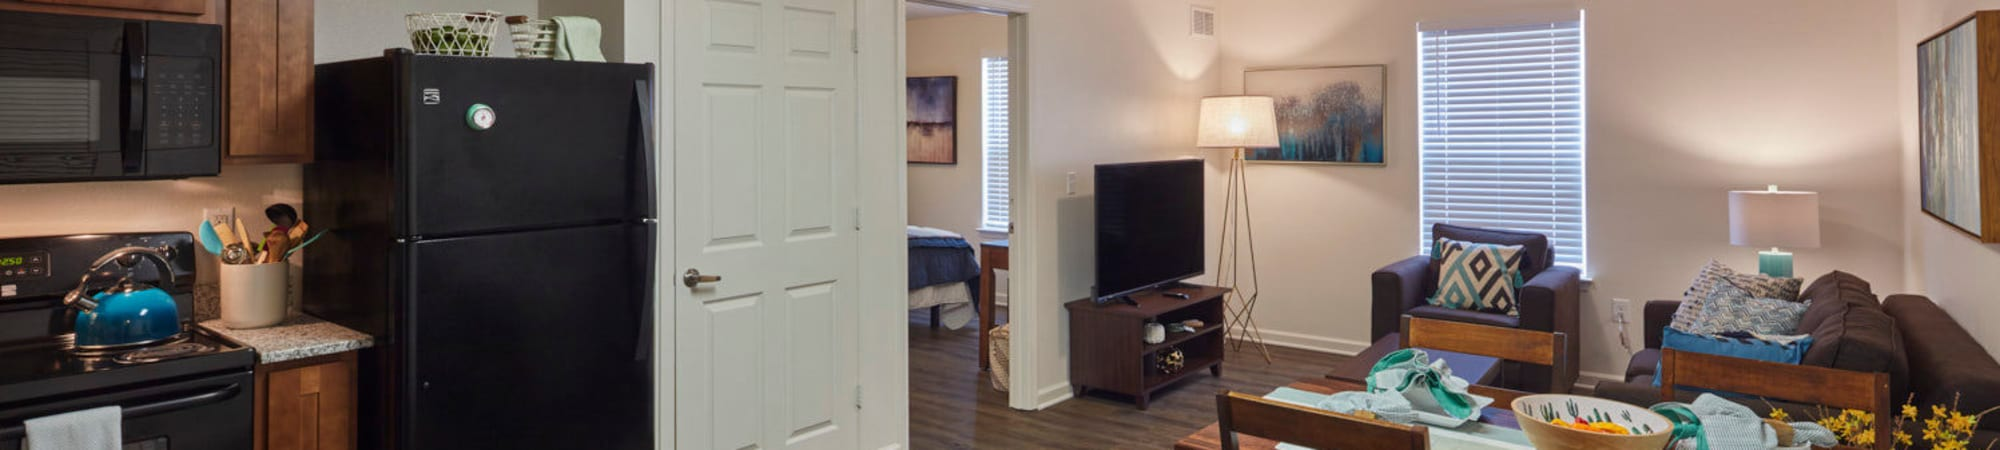 Floor plans at Trifecta Apartments in Louisville, Kentucky